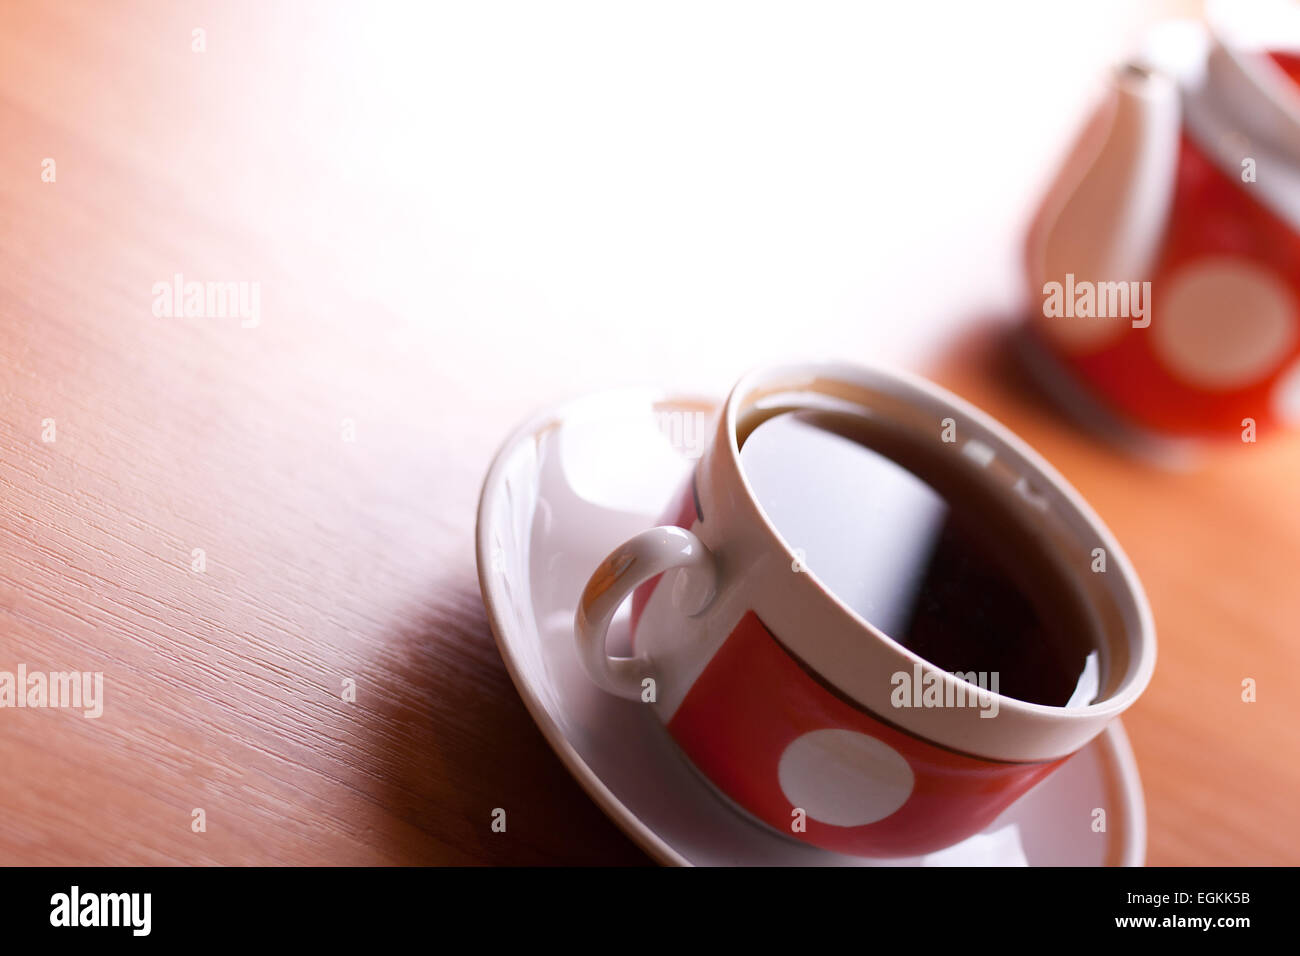 cup of black tea close up on a table with teapot blurred on background - Stock Image